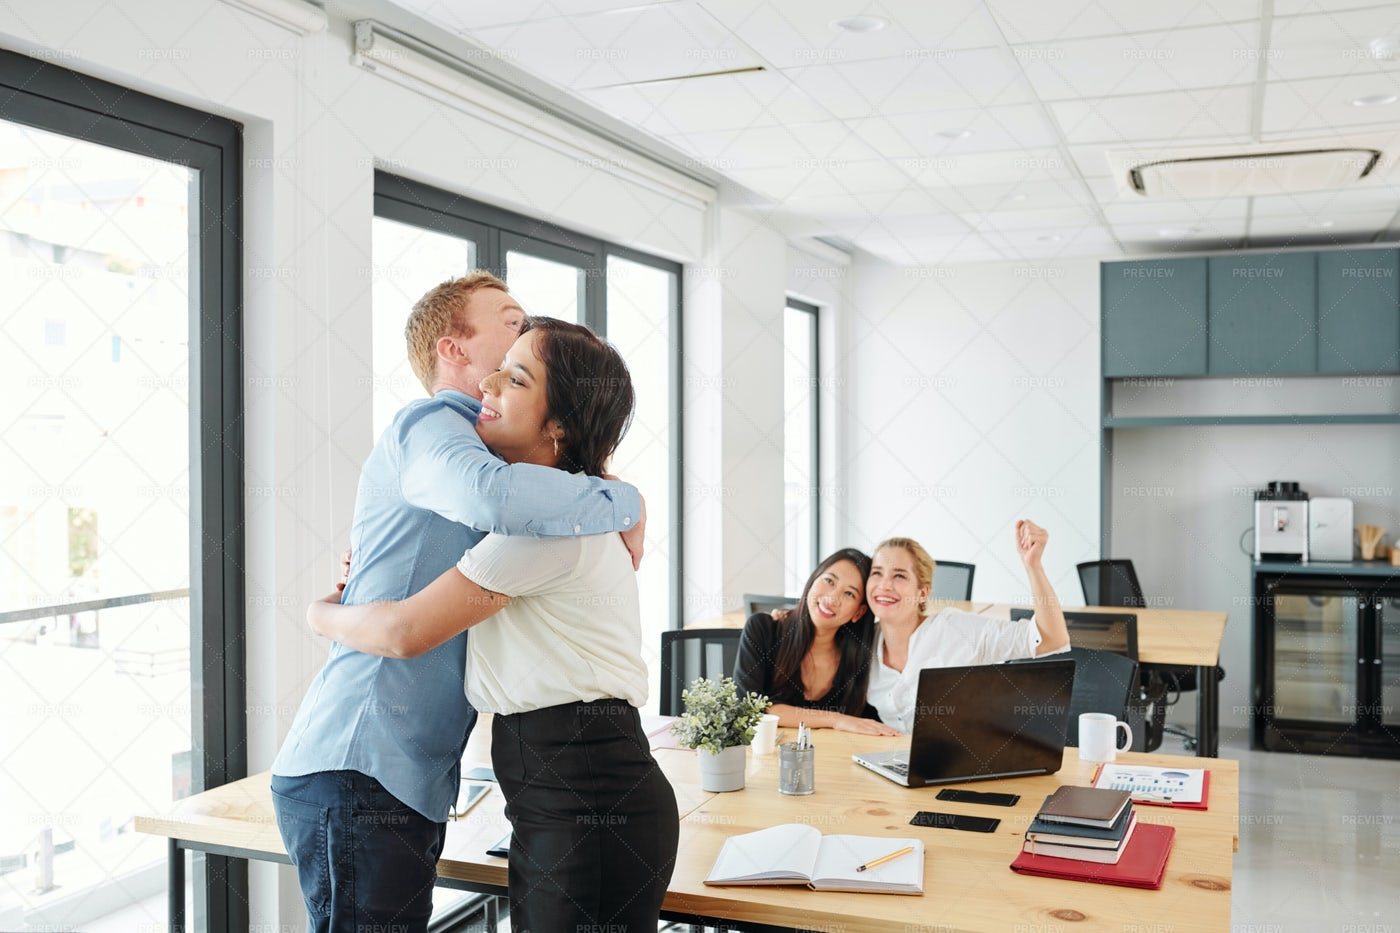 Business Partners Happy Their: Stock Photos